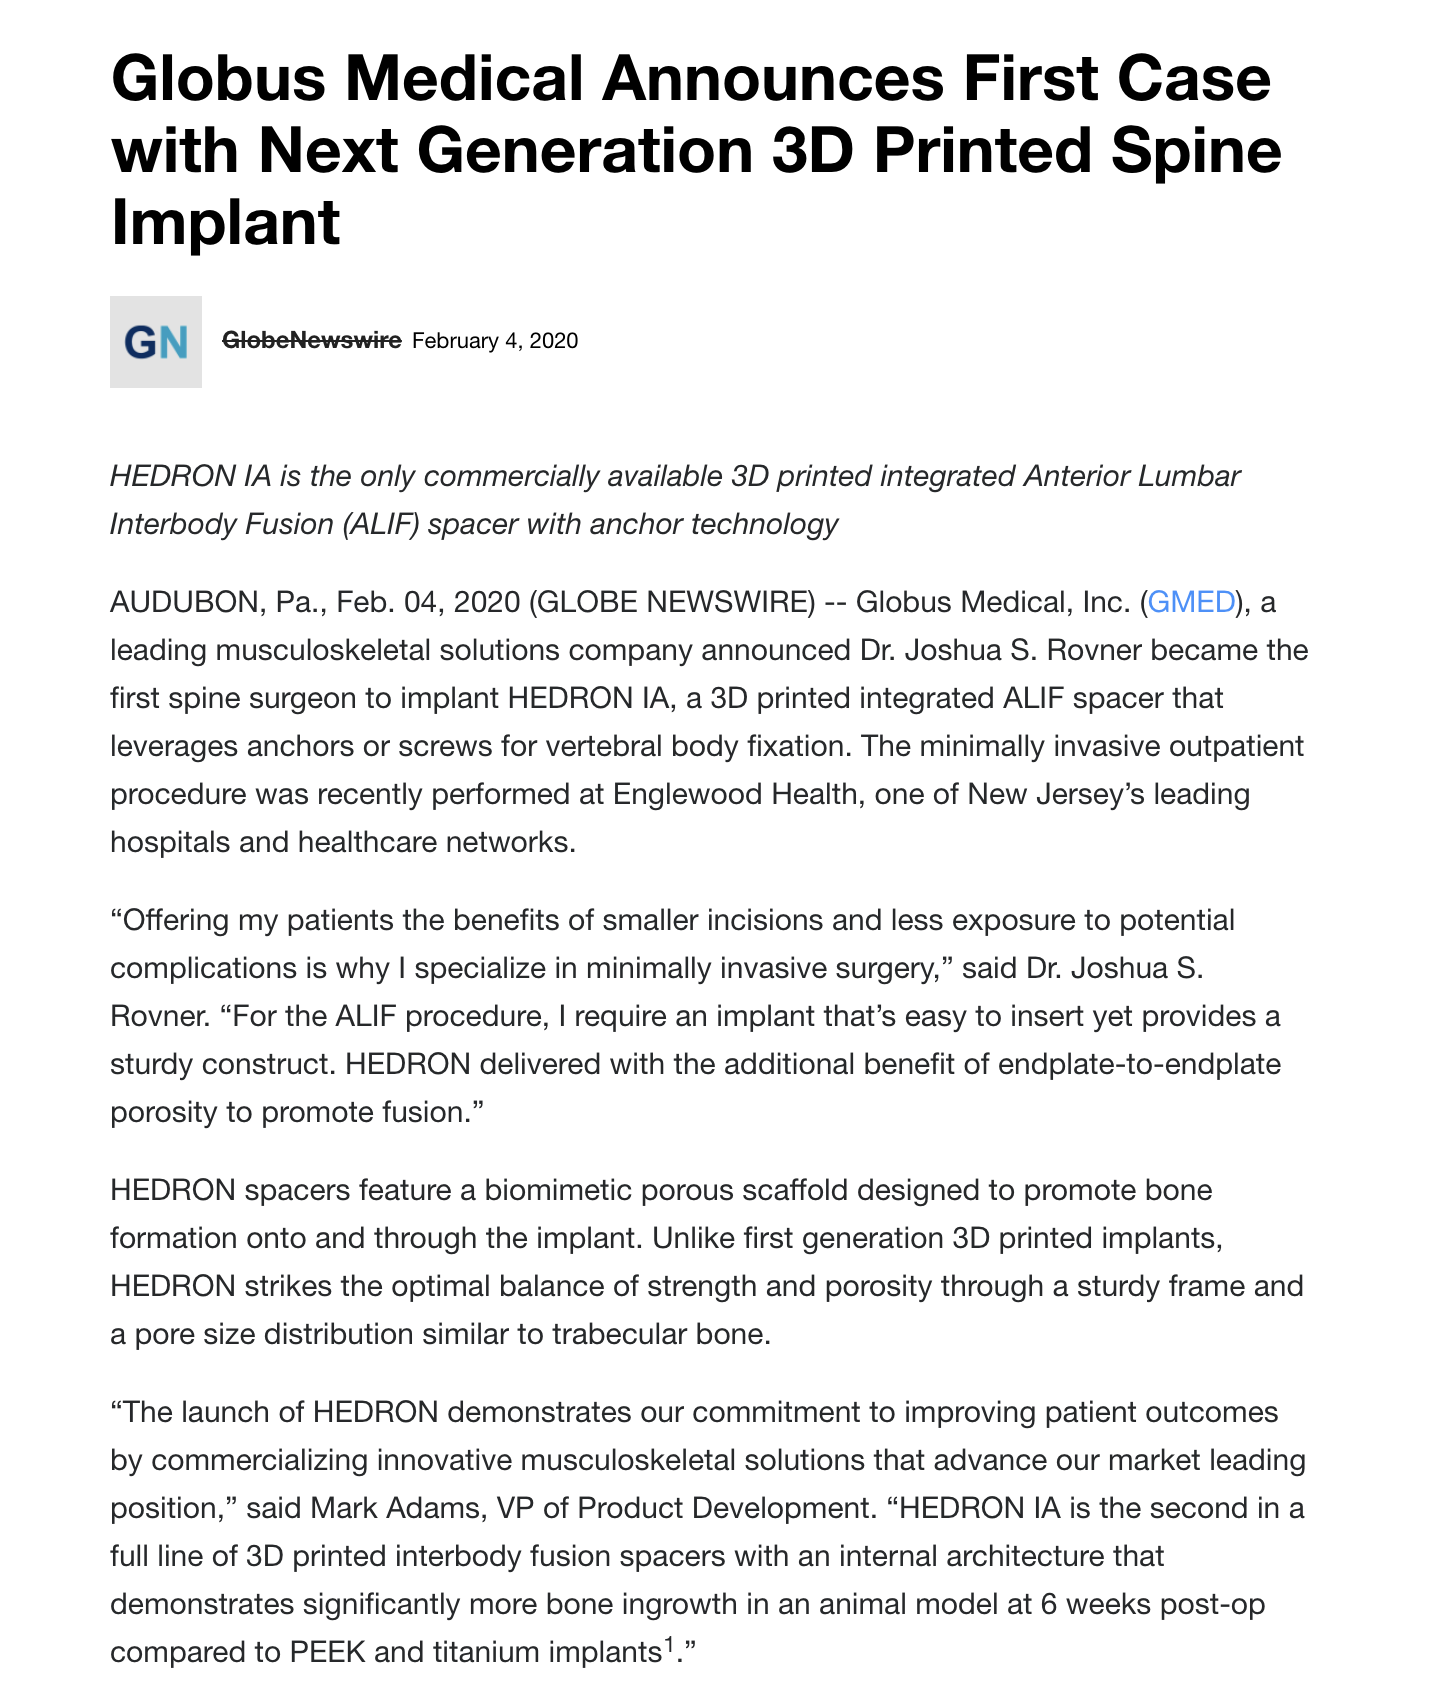 Globus Medical First Case with Next Generation 3D Printed Spine Implant